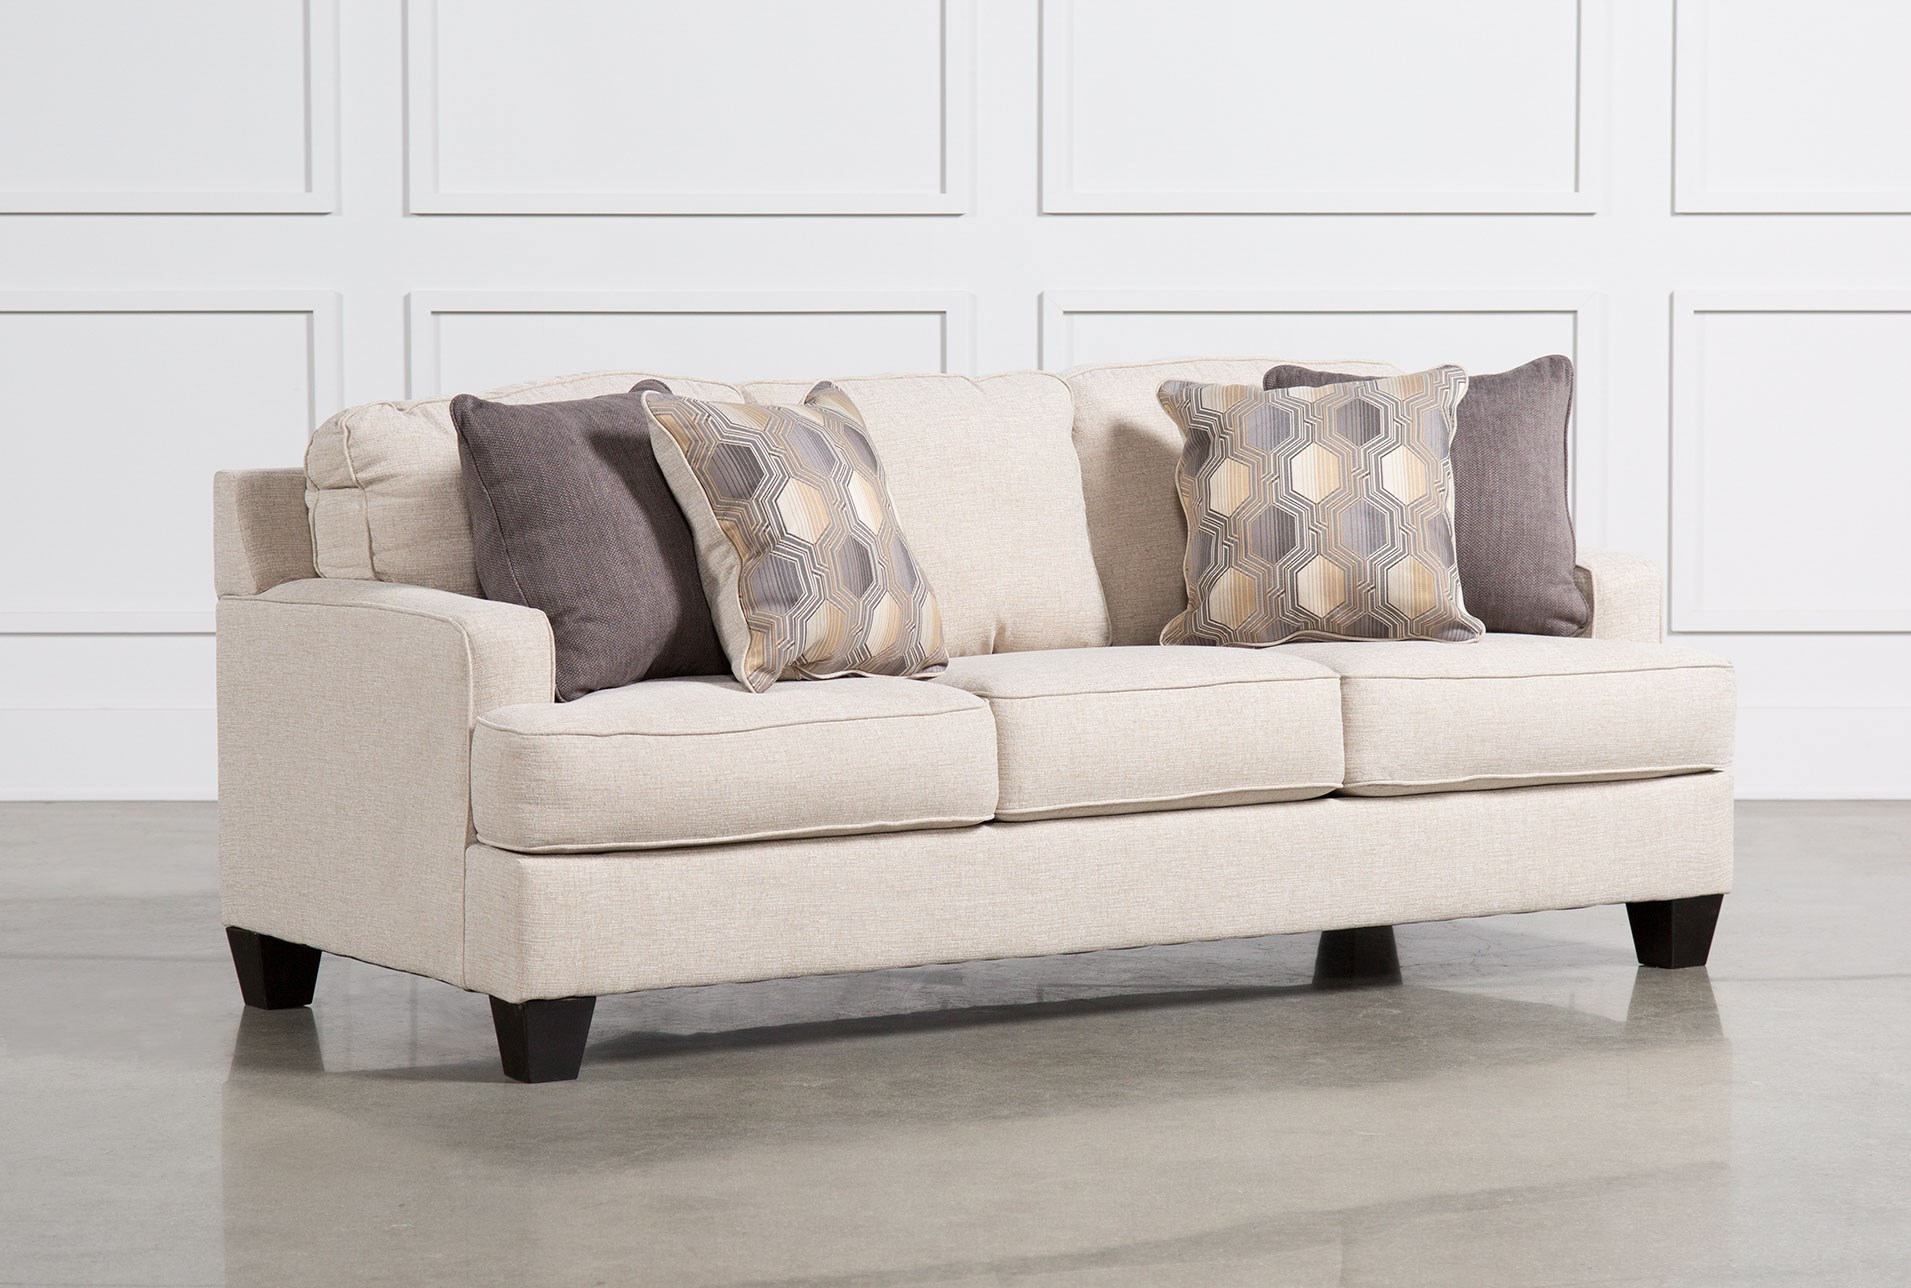 brielyn linen queen sofa sleeper. brielyn linen sofa  living spaces